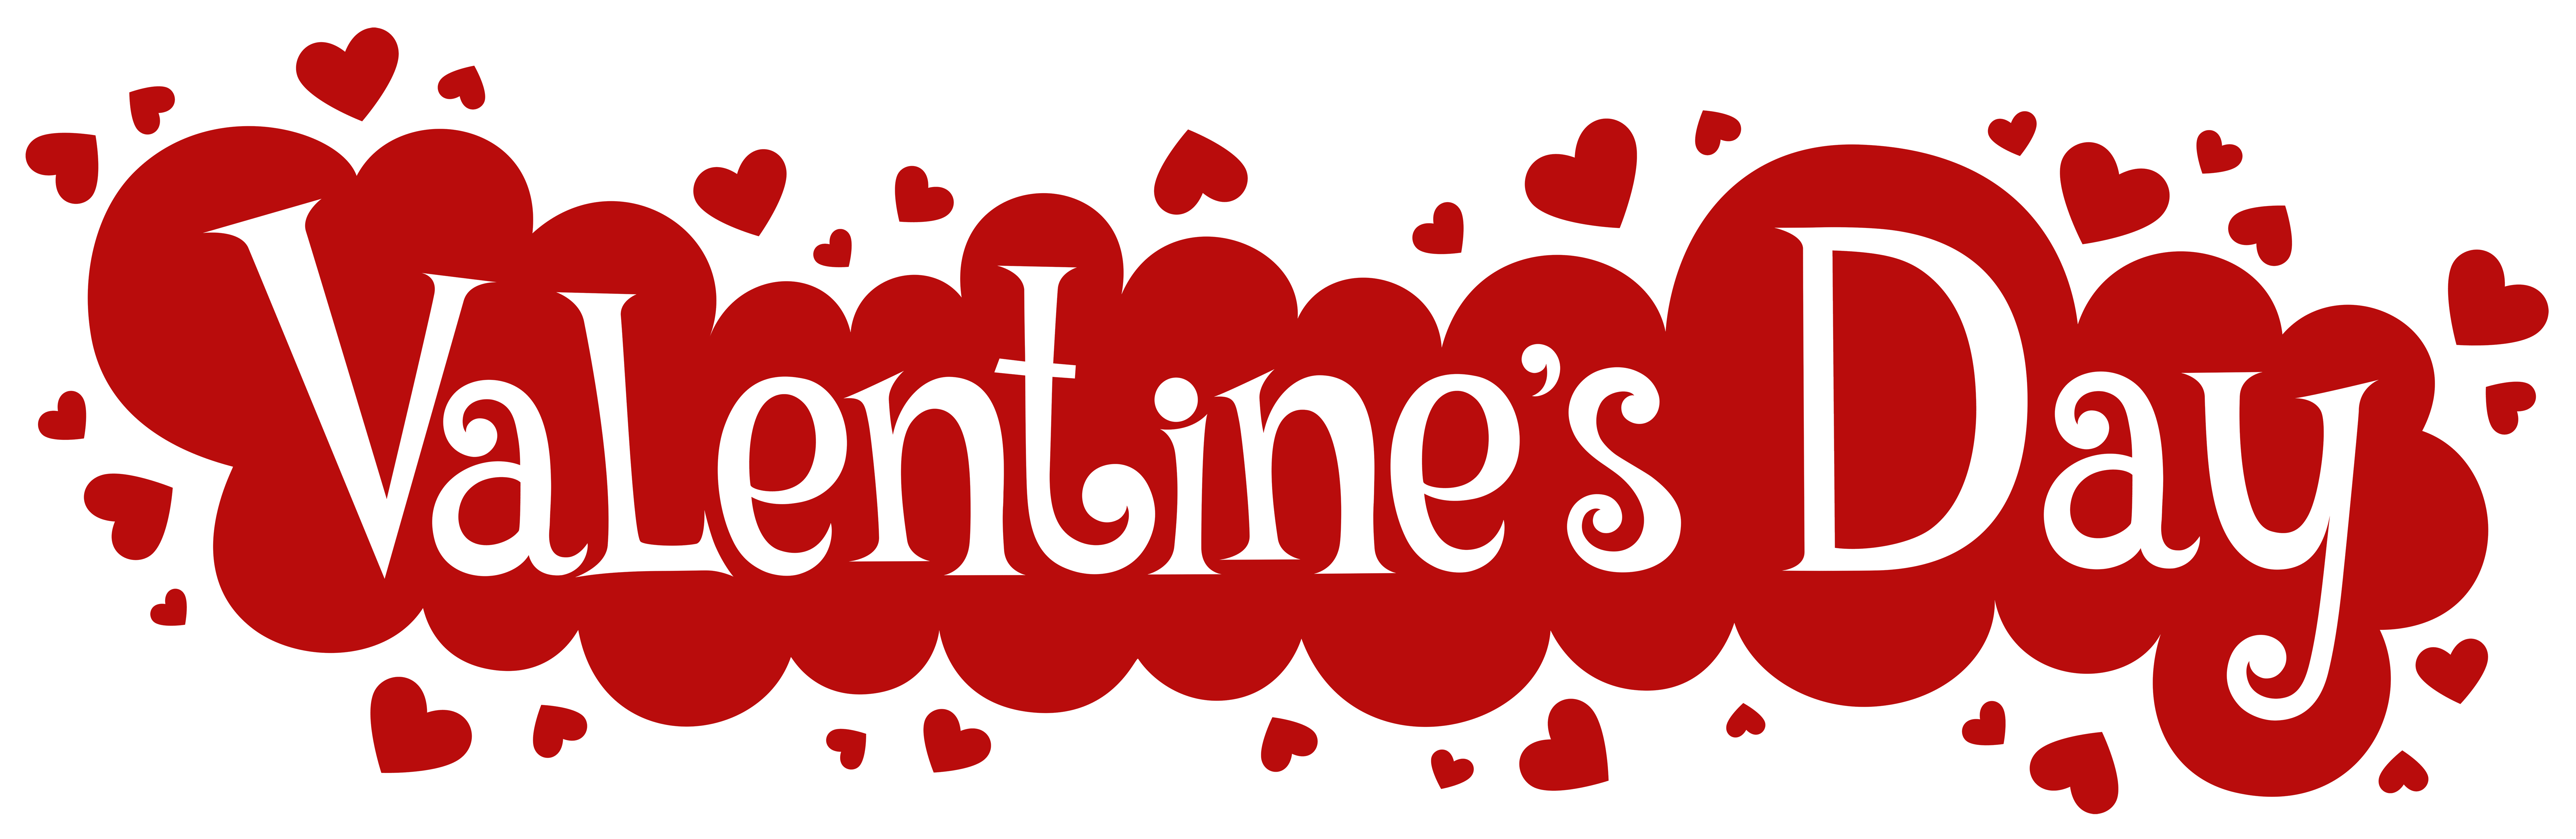 Valentines day clip art png. Valentine s image gallery